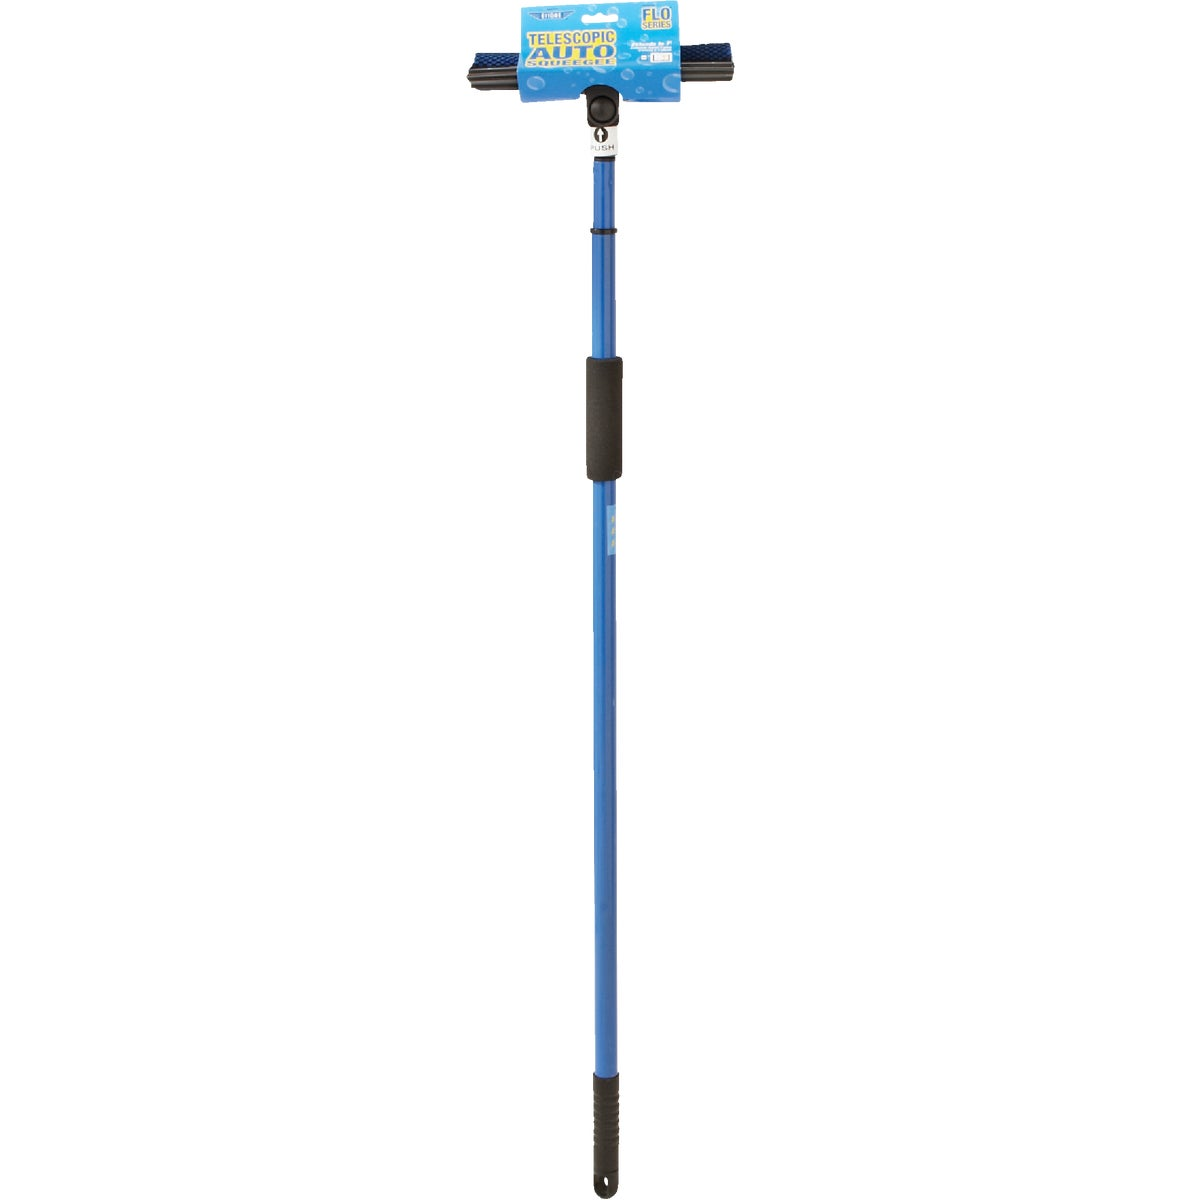 SCRUBBER/SQUEEGEE - 59084 by Ettore Products Co